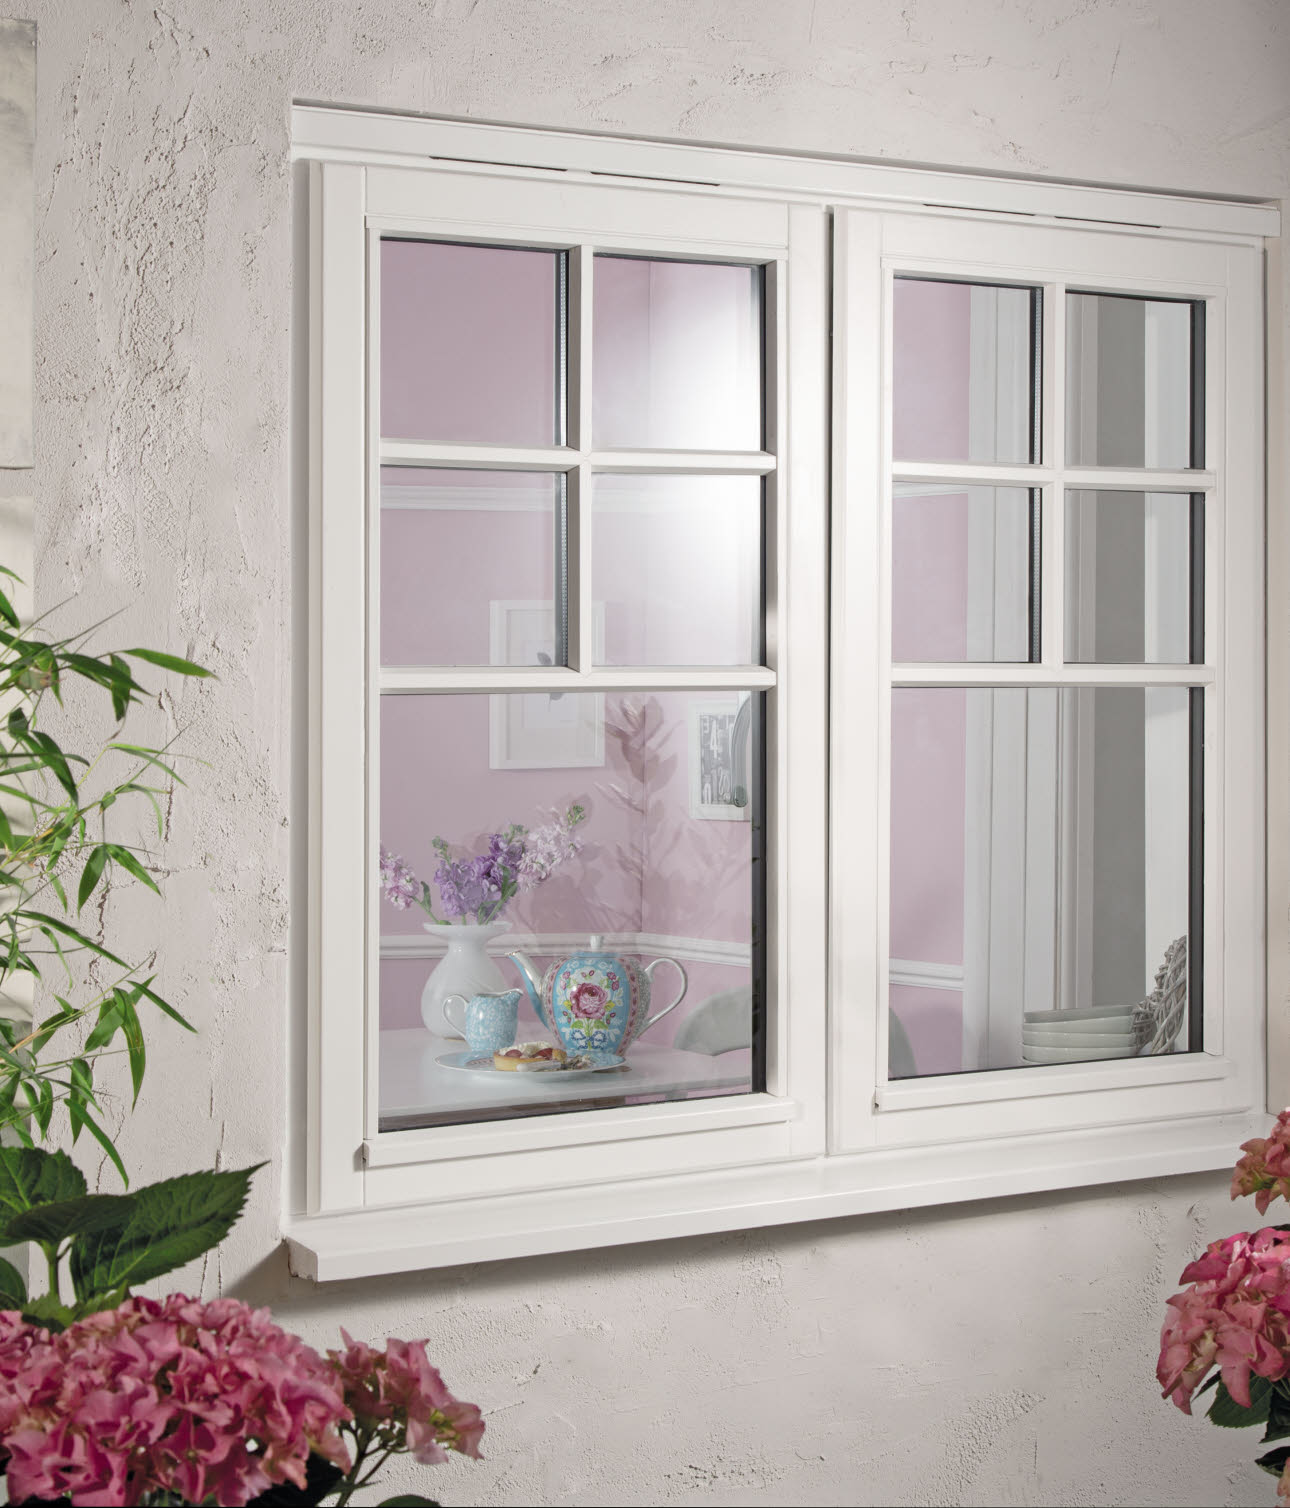 JELD-WEN Standard Victorian Bar Timber Window